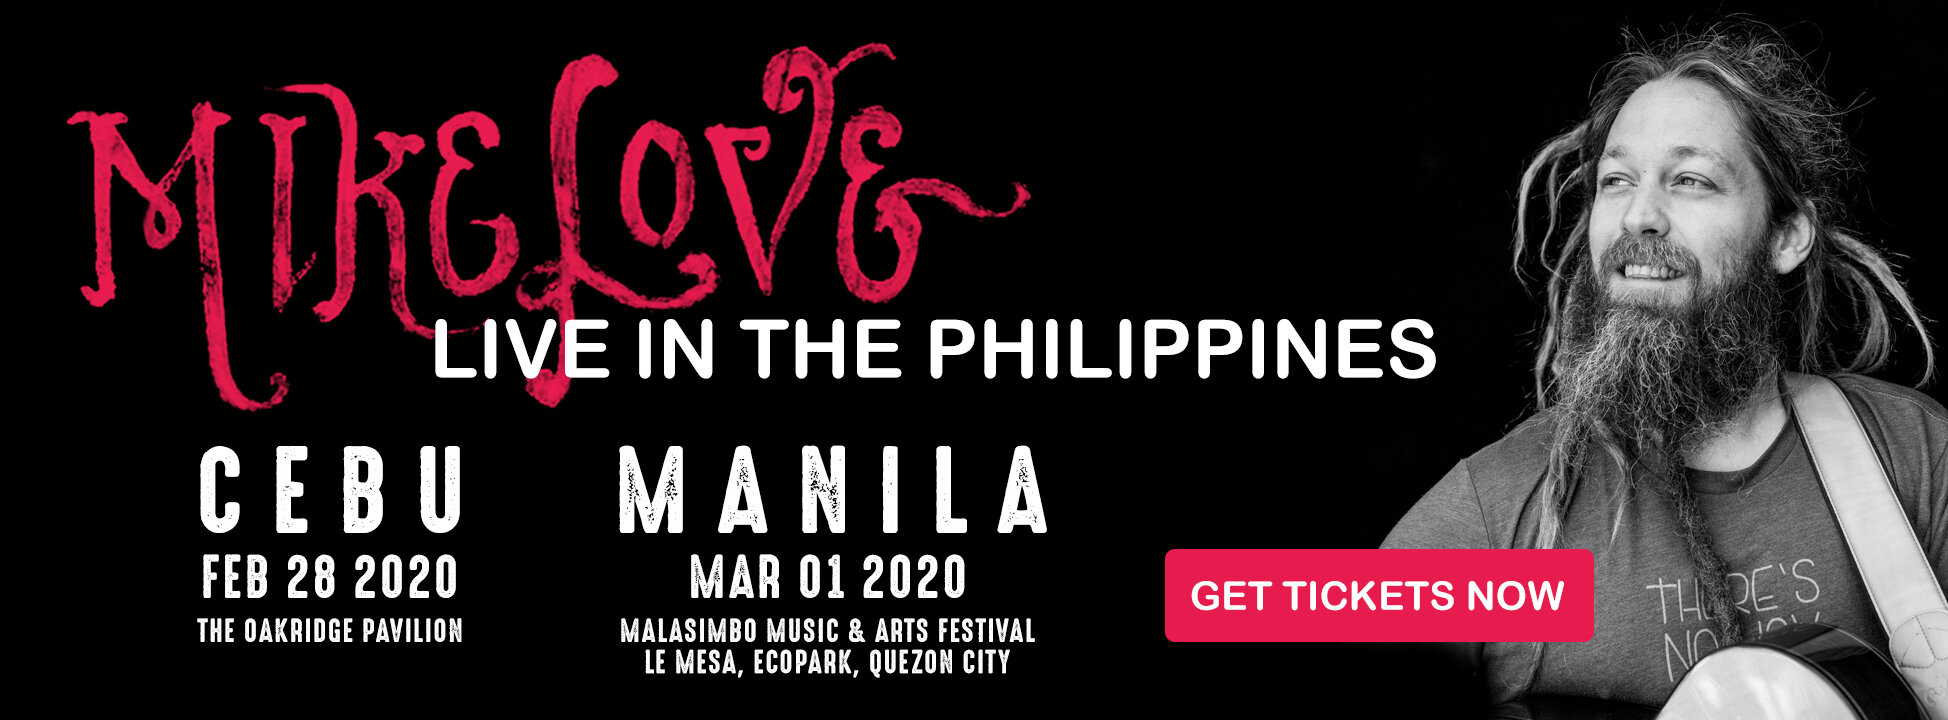 mike love in philippines banner.jpg